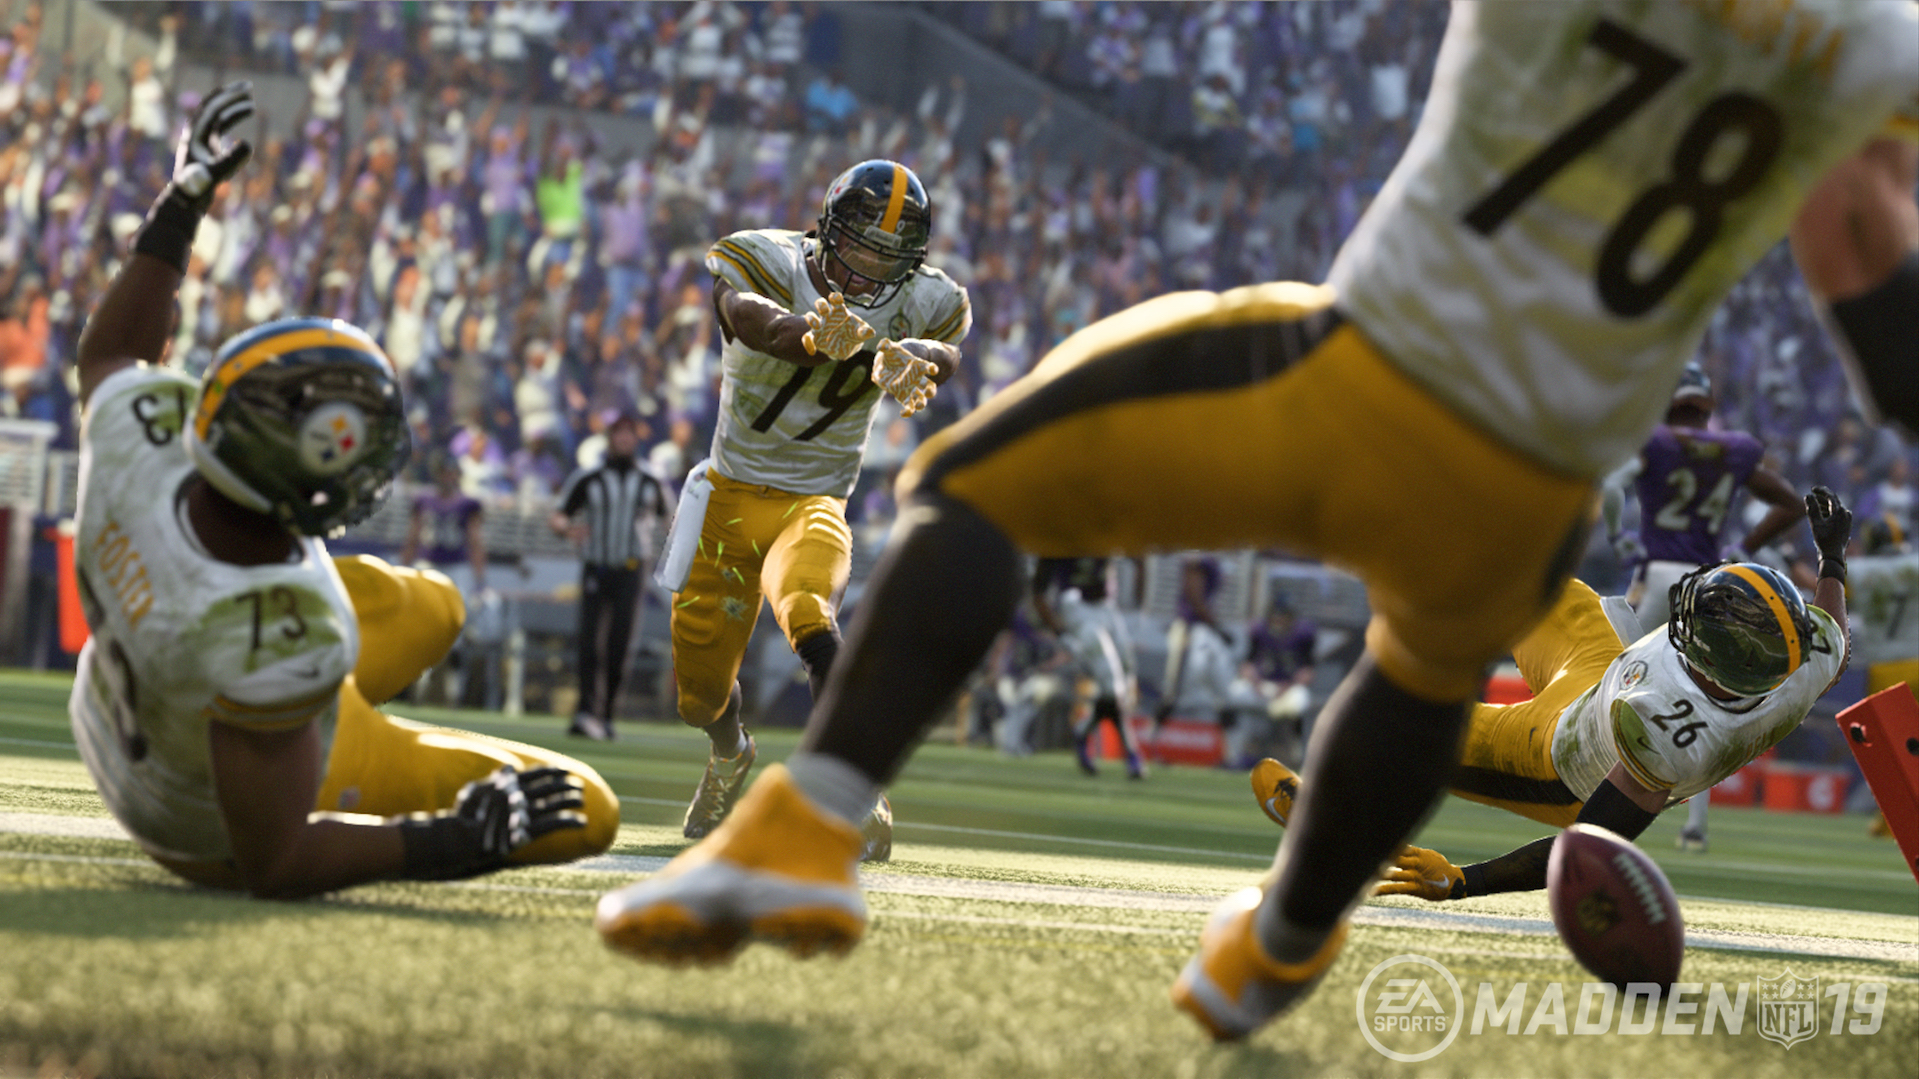 Madden 19 Review Roundup, Franchise Mode, PC Specs, Cover